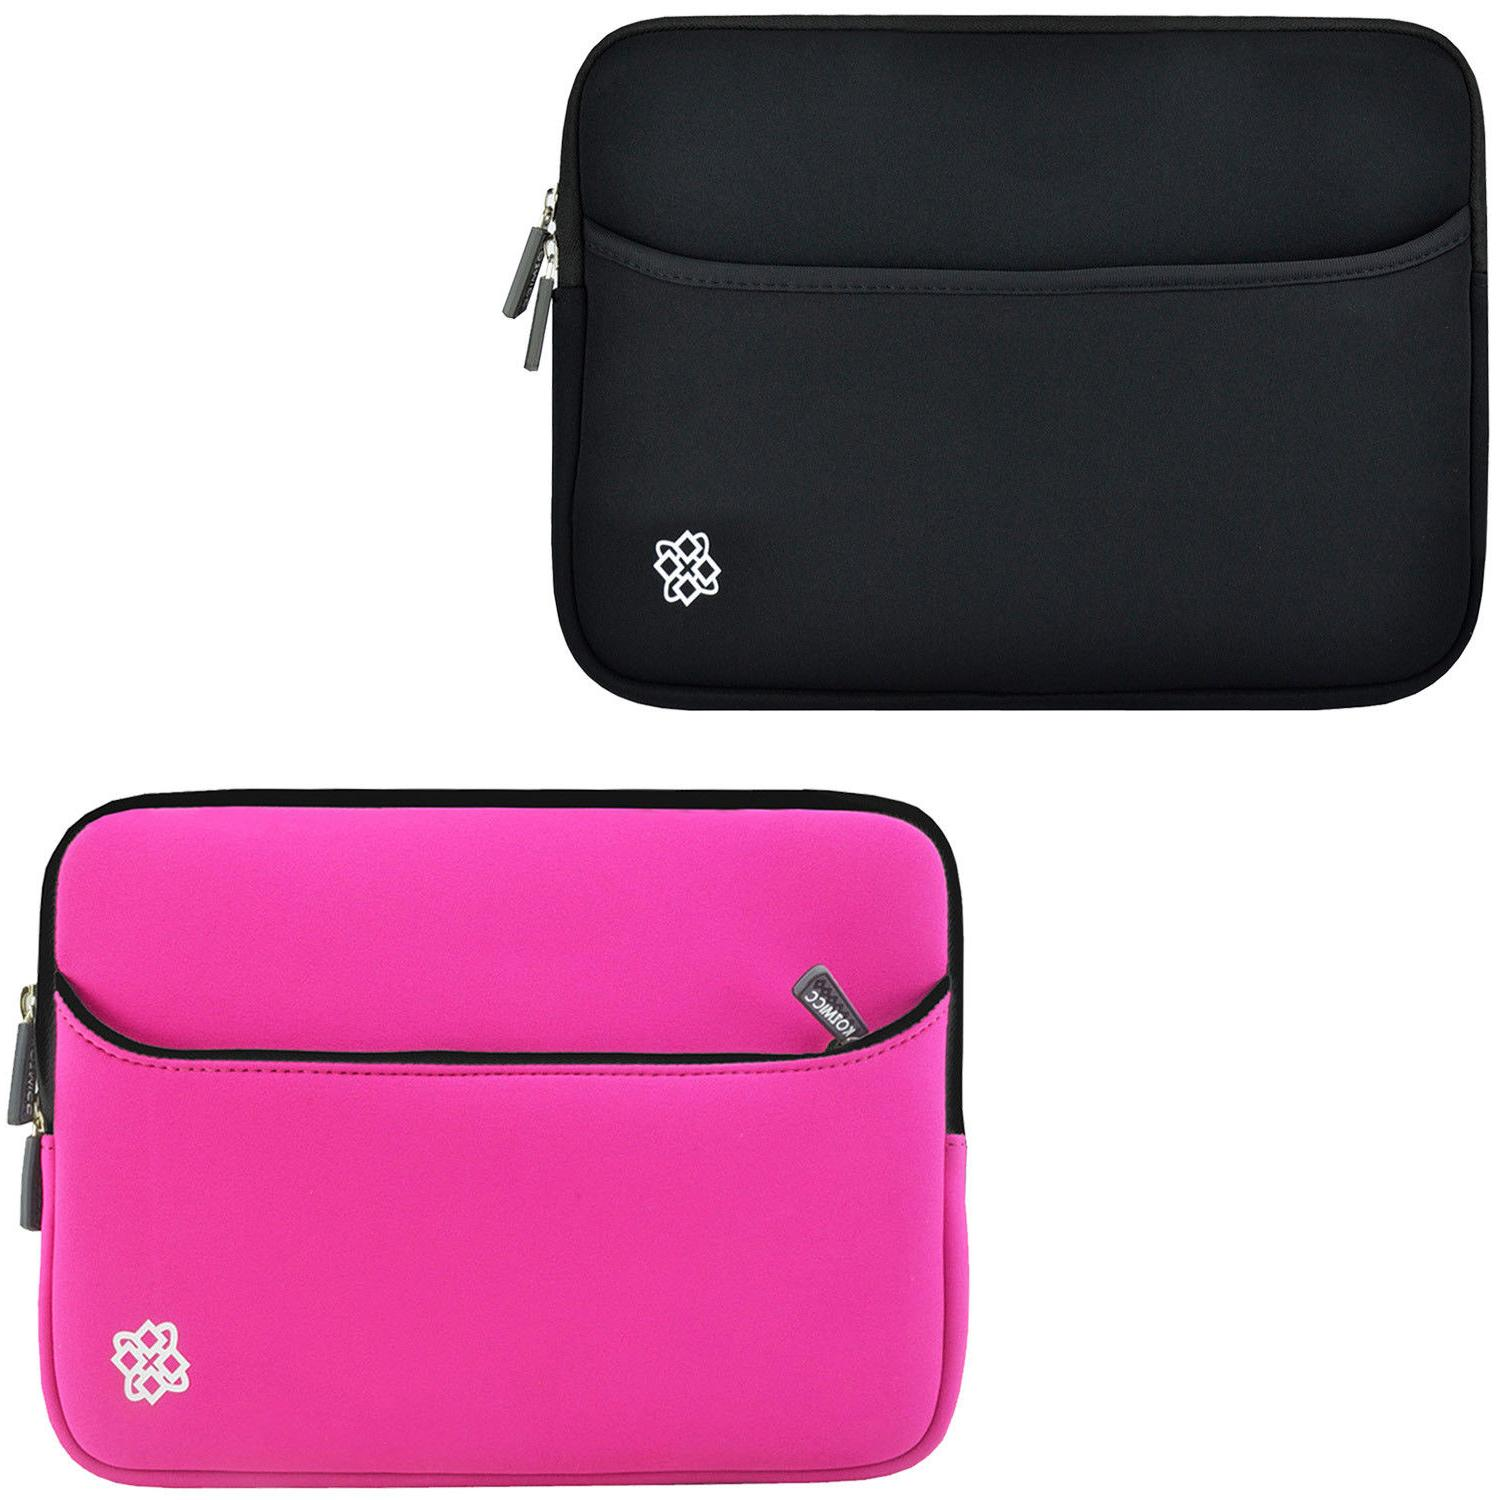 Neoprene Carrying Handle Case Cover Travel Storage Bag for B